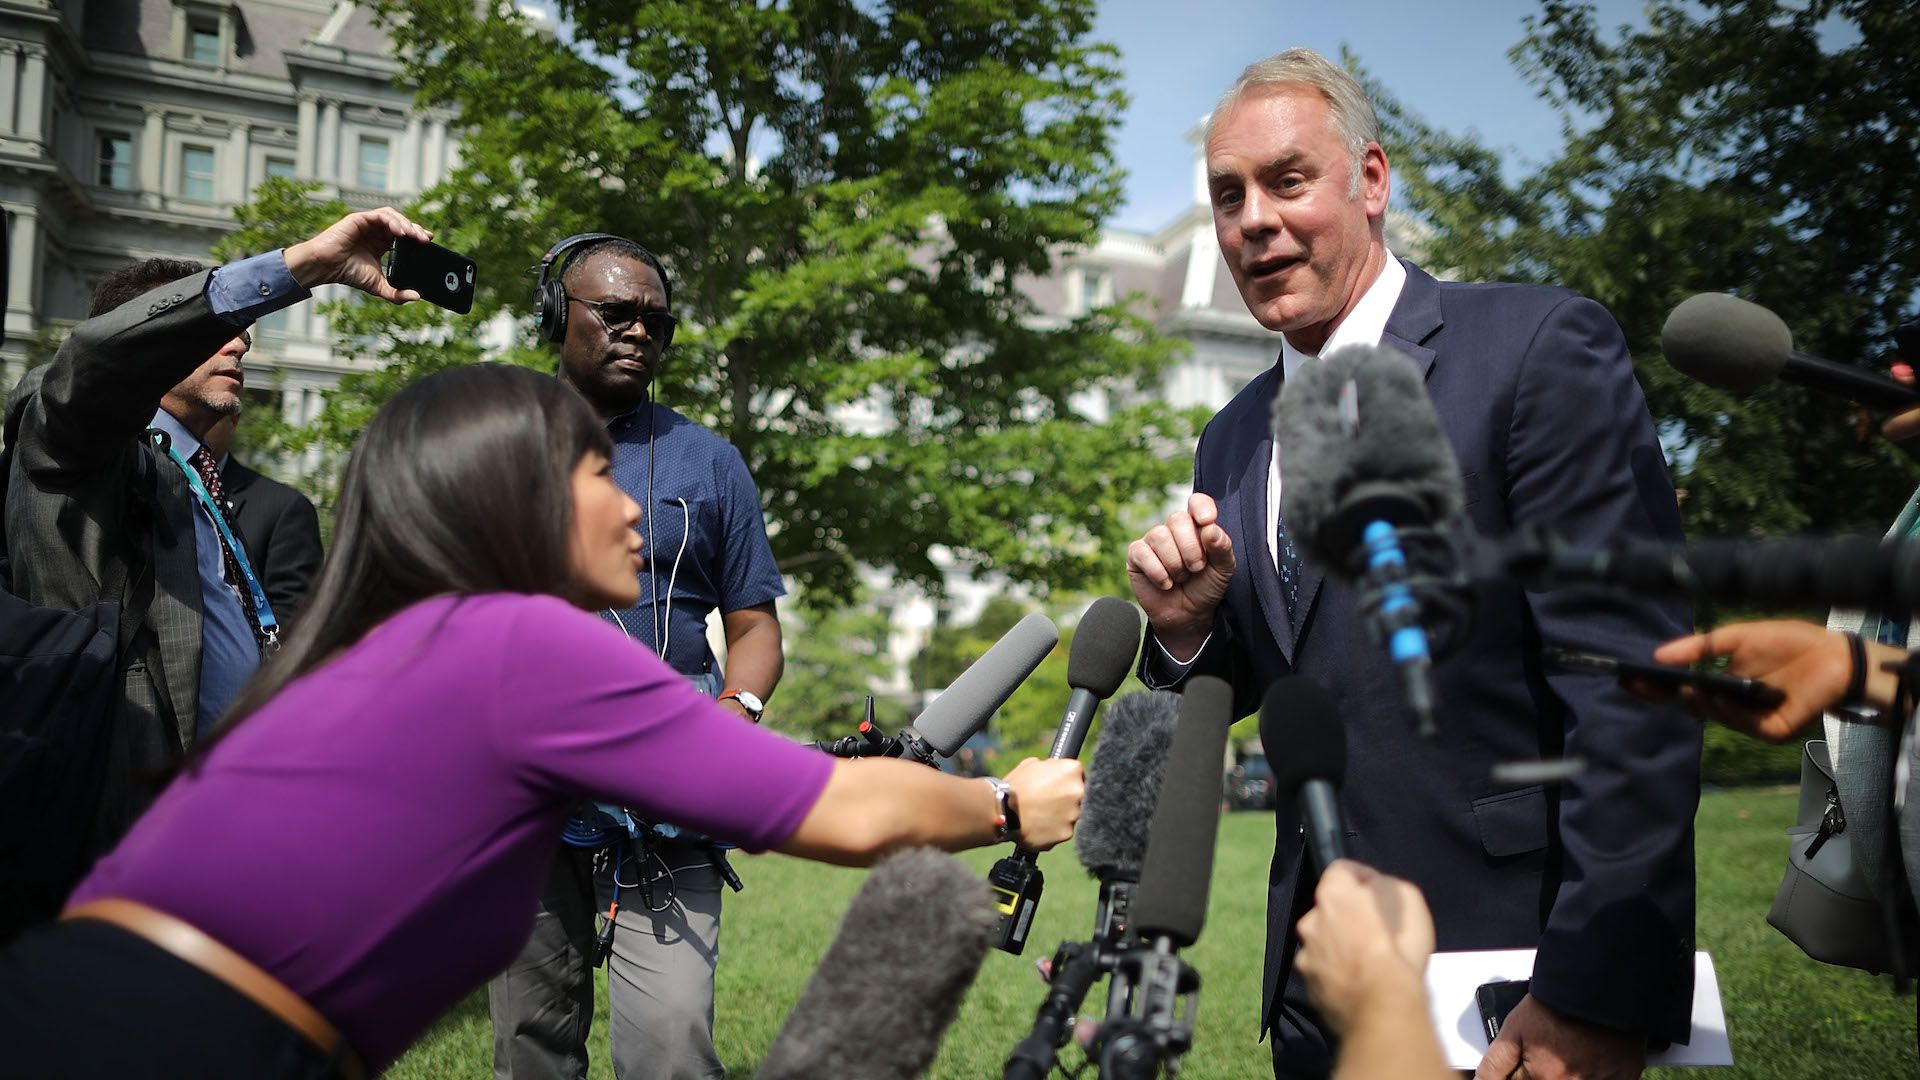 Interior Secretary Ryan Zinke discusses wildfires with press at the White House.